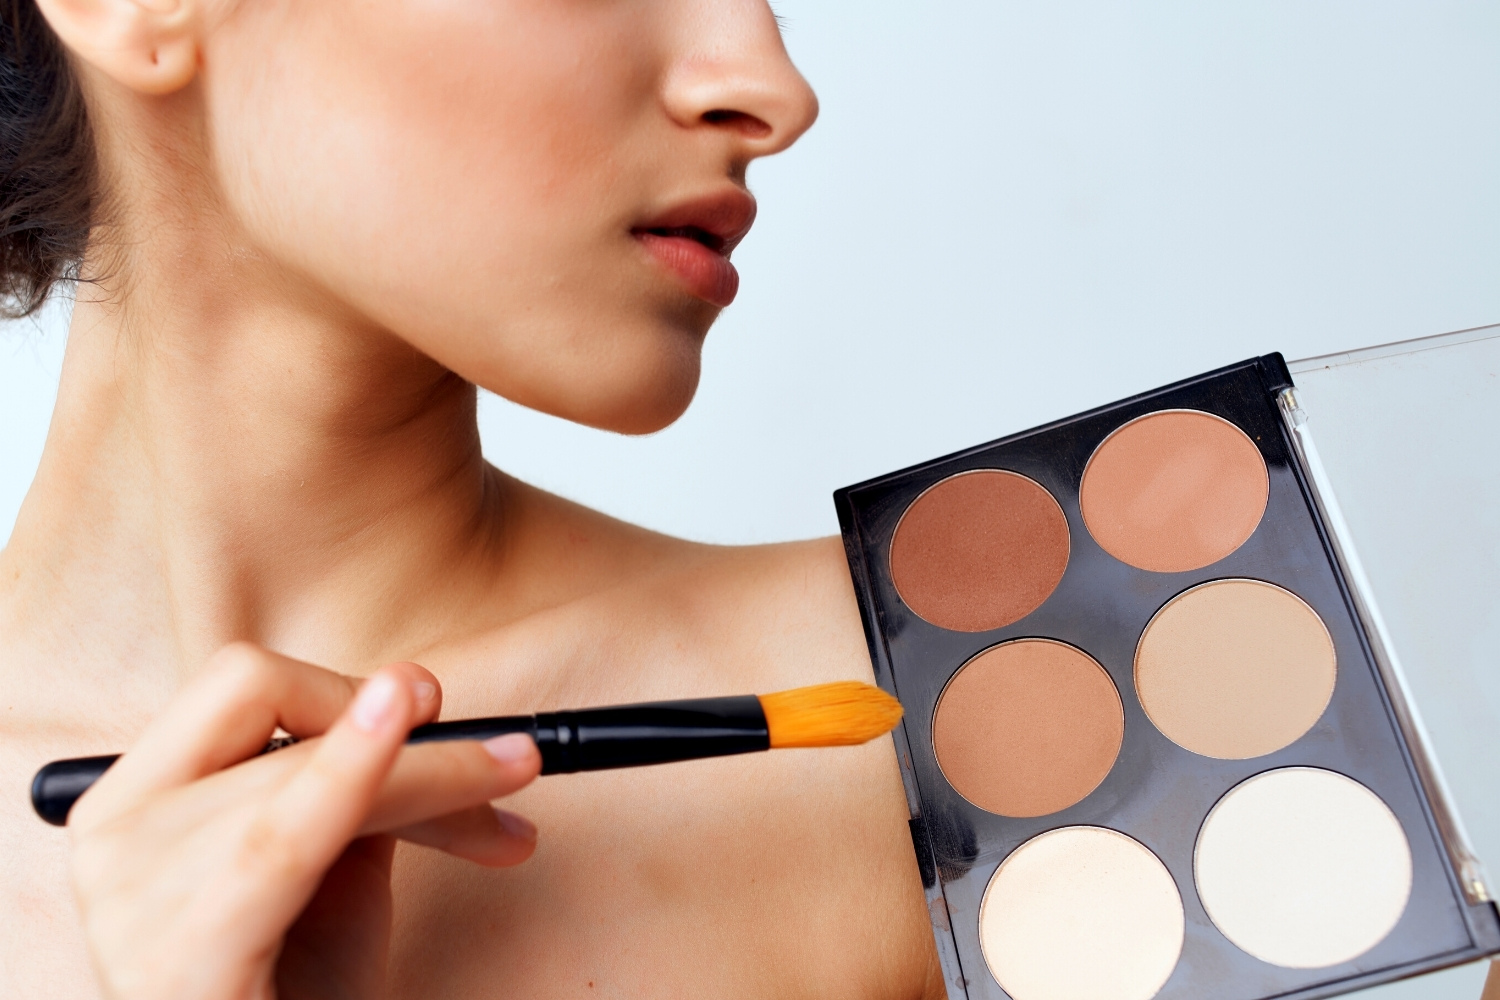 Are You Making These Five Common Makeup Mistakes